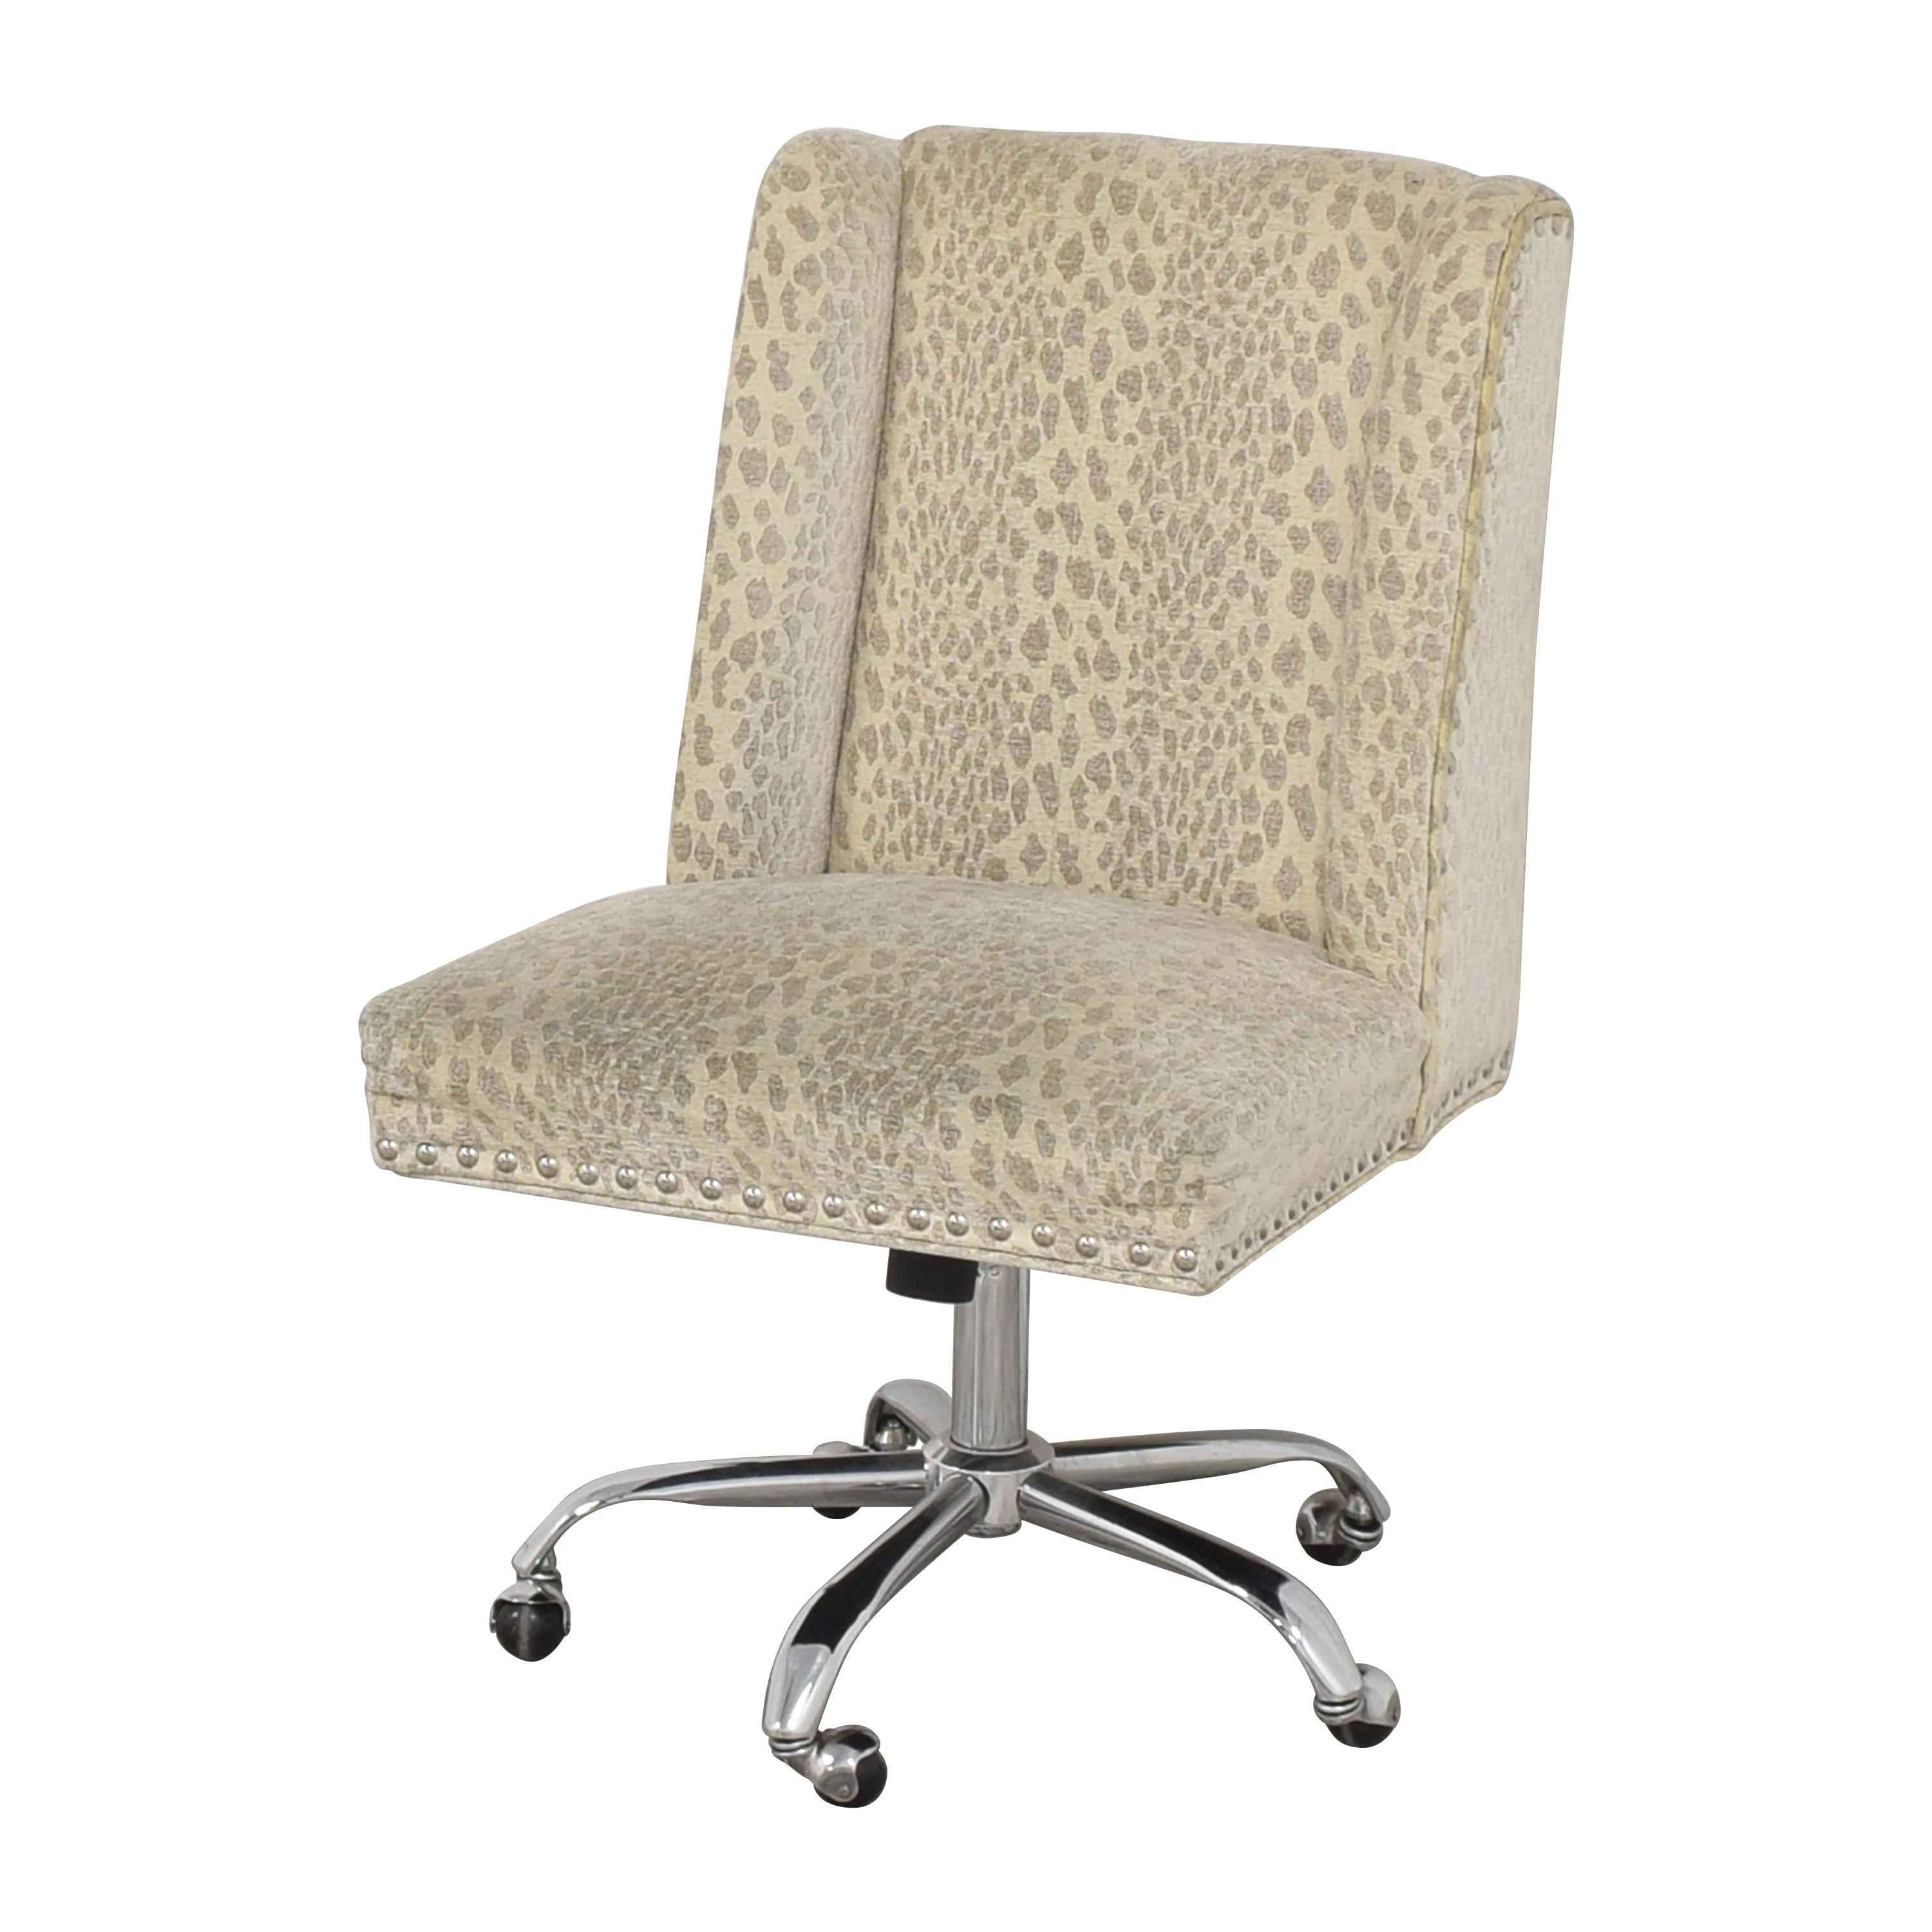 Fabric Desk Office Chair used